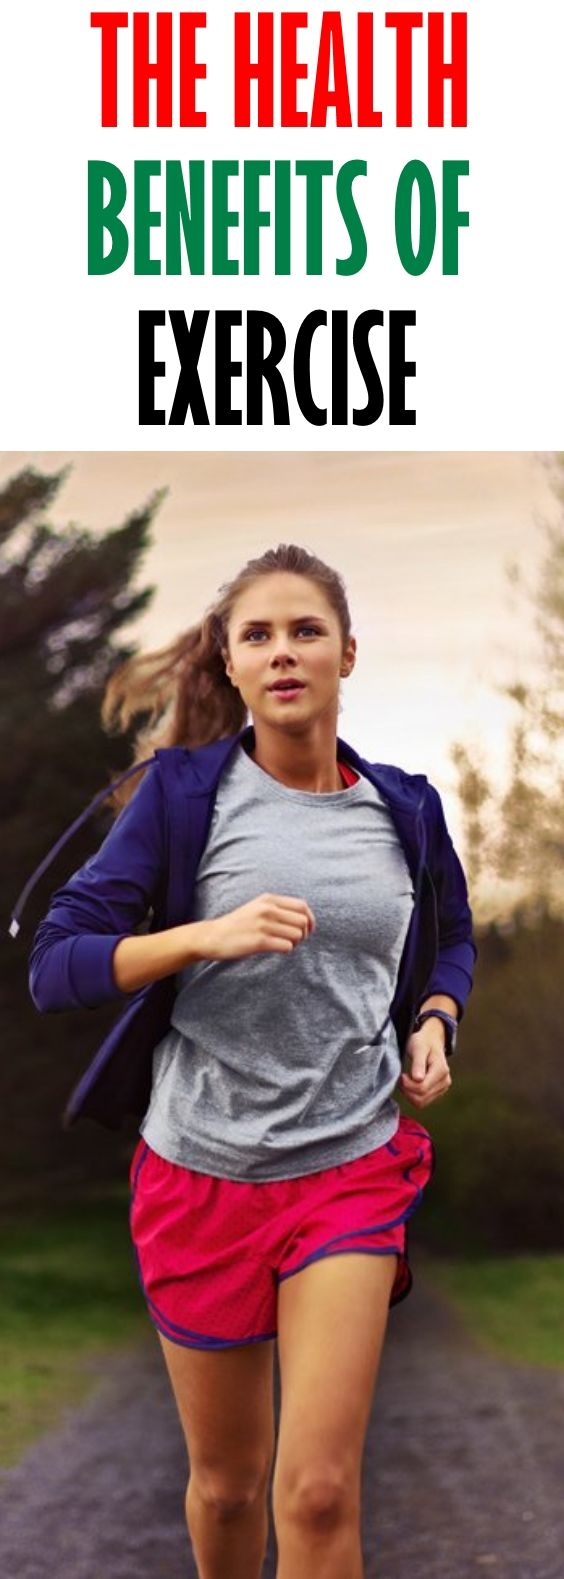 The Health Benefits of Exercise